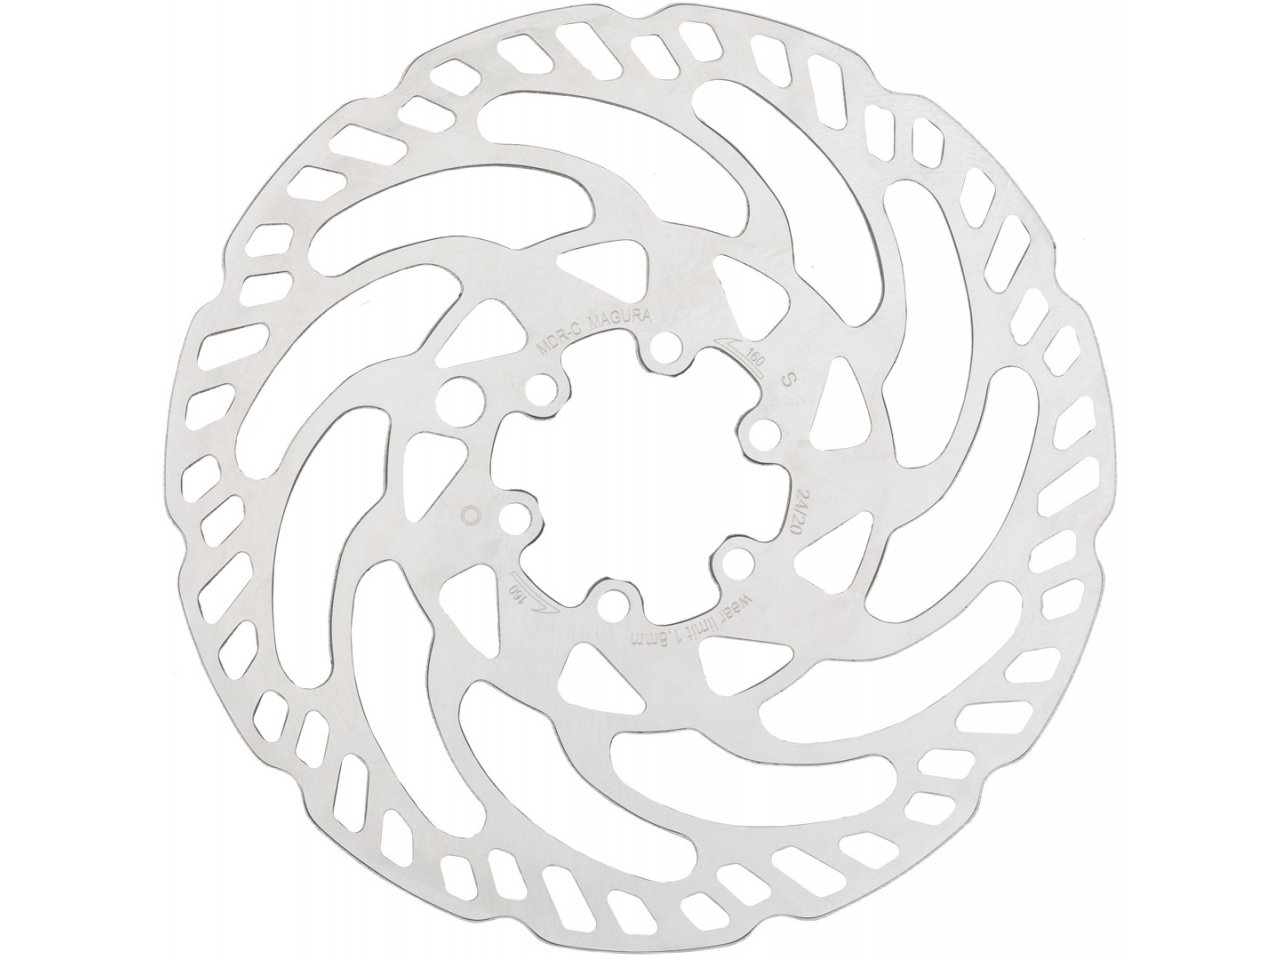 Magura MDR-C Disc Brake Rotor 6 Bolt Disc For eBike One Piece Silver 222 g